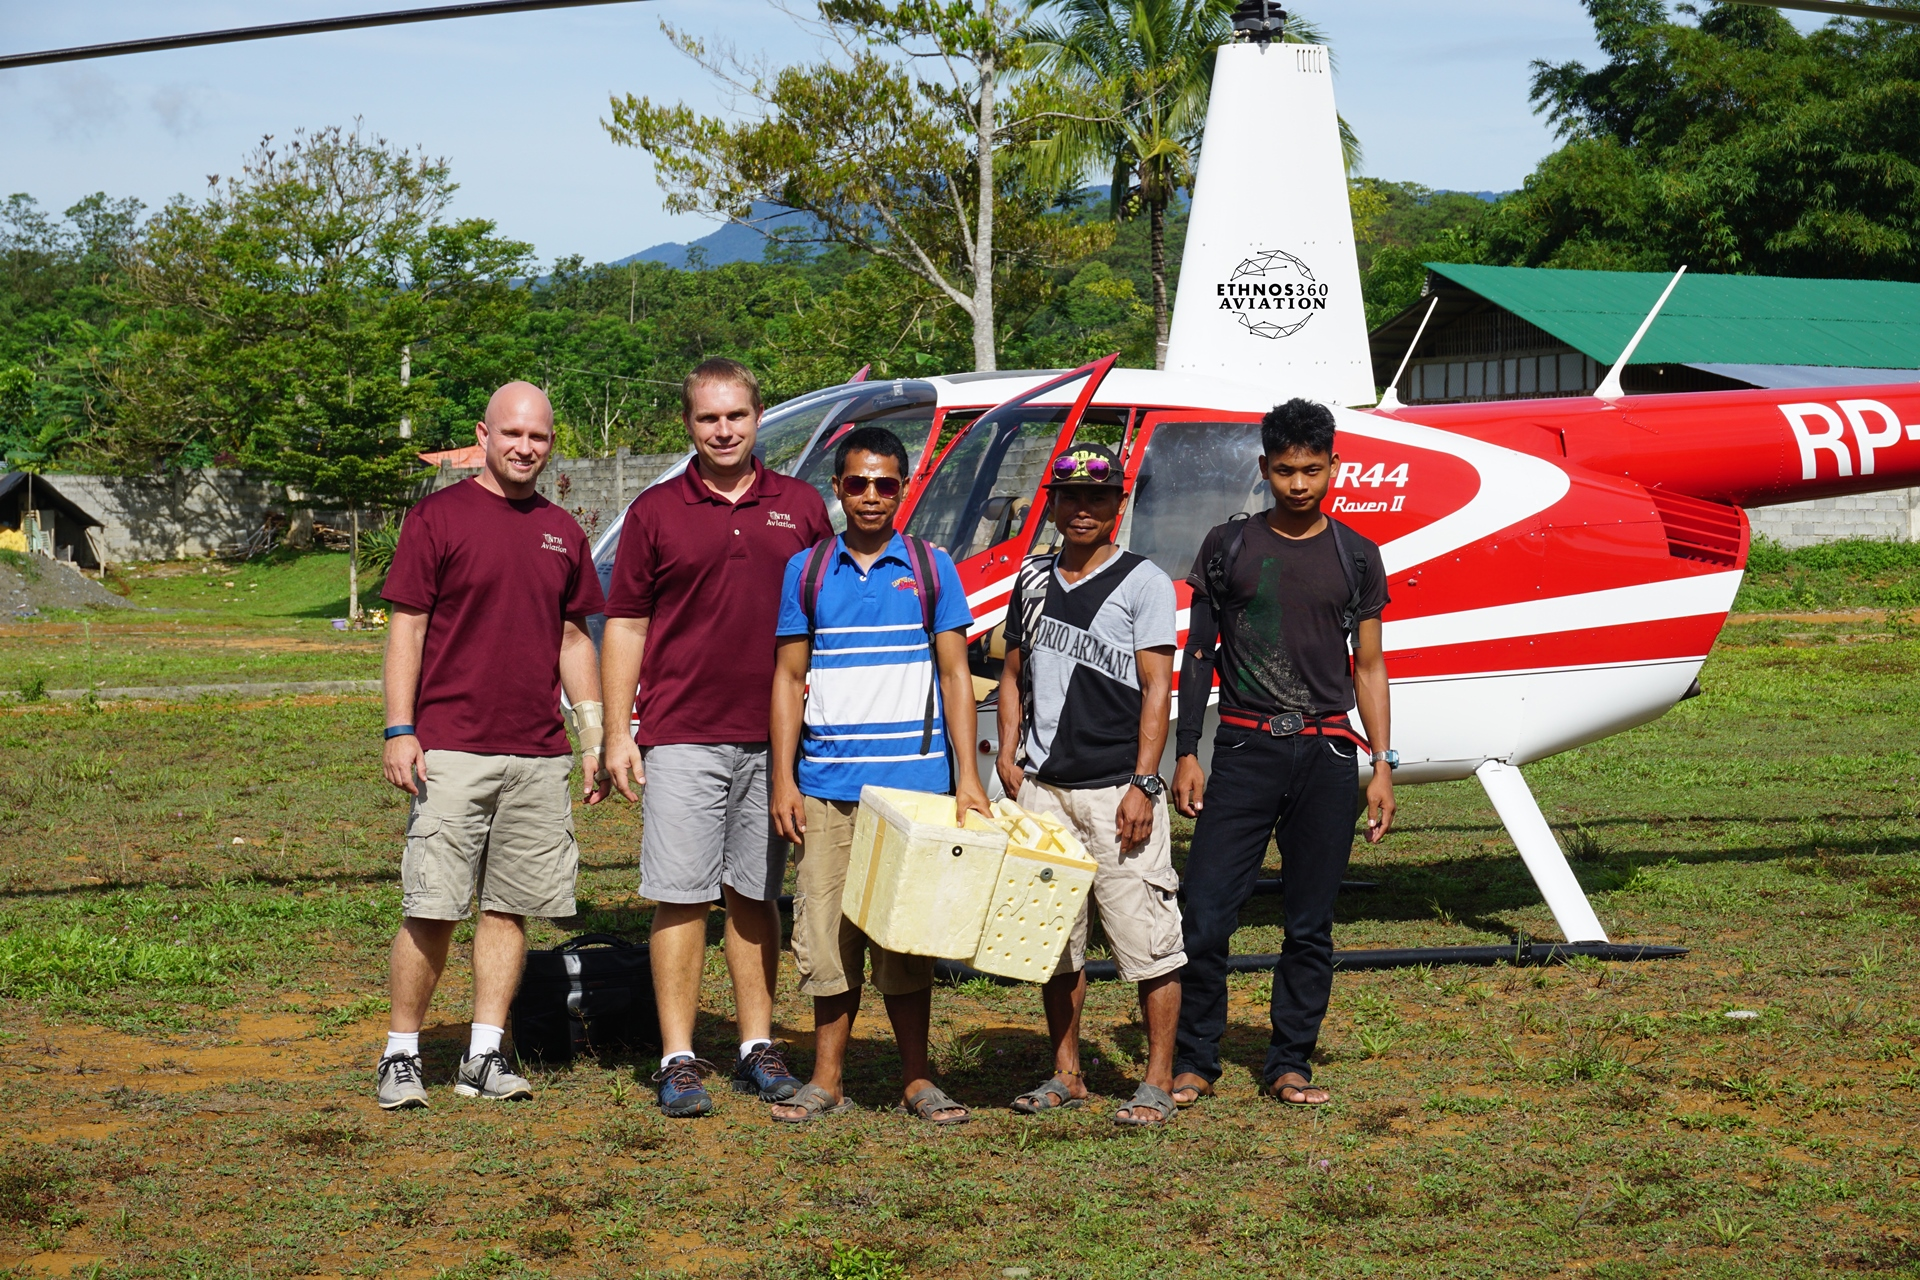 Philippines R66 Helicopter - Ethnos360 Aviation